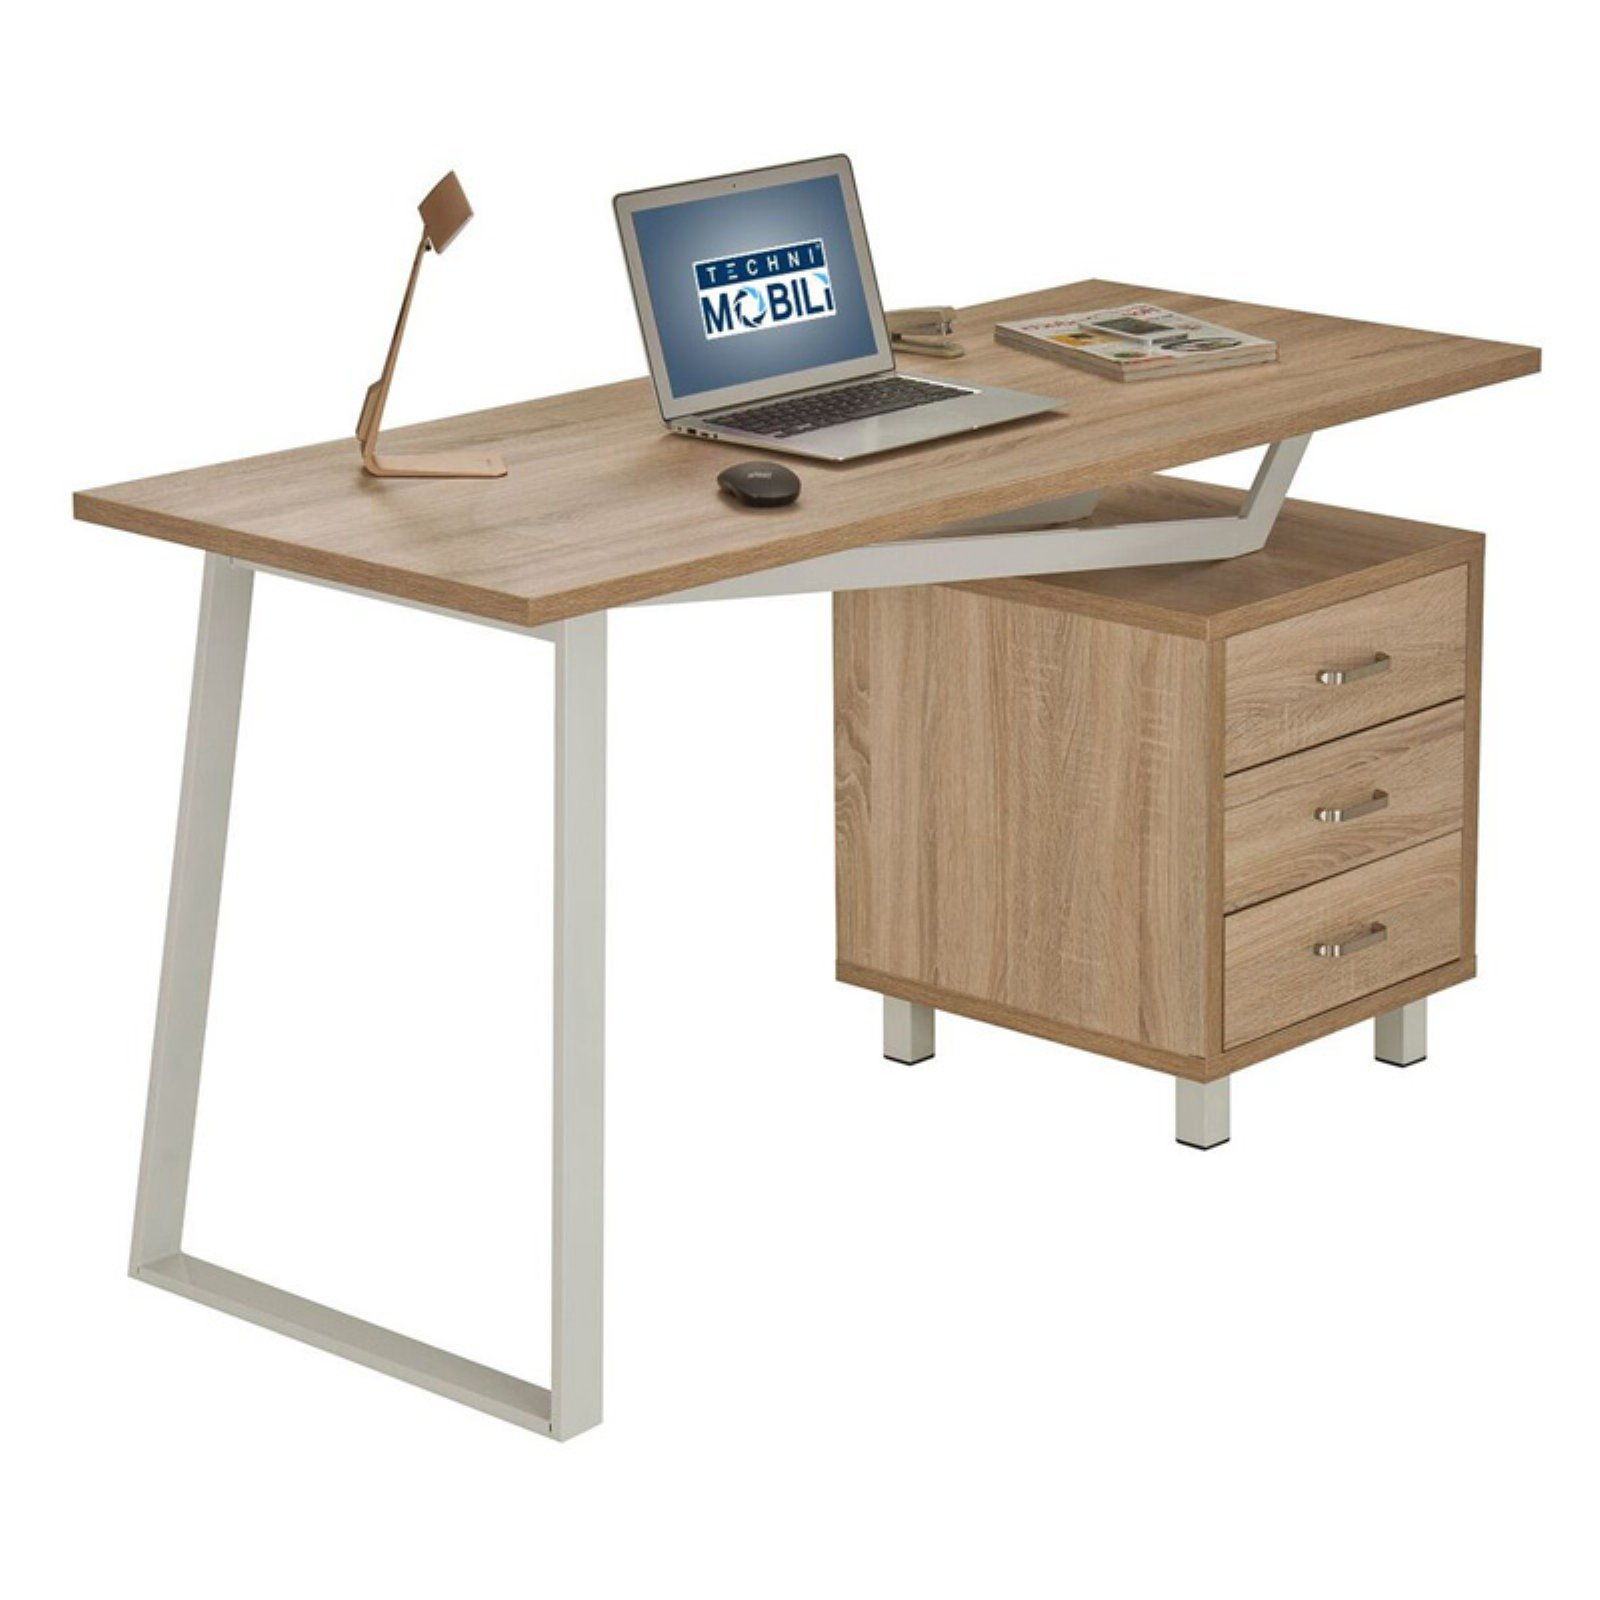 Techni Mobili Computer Desk with Storage Drawers